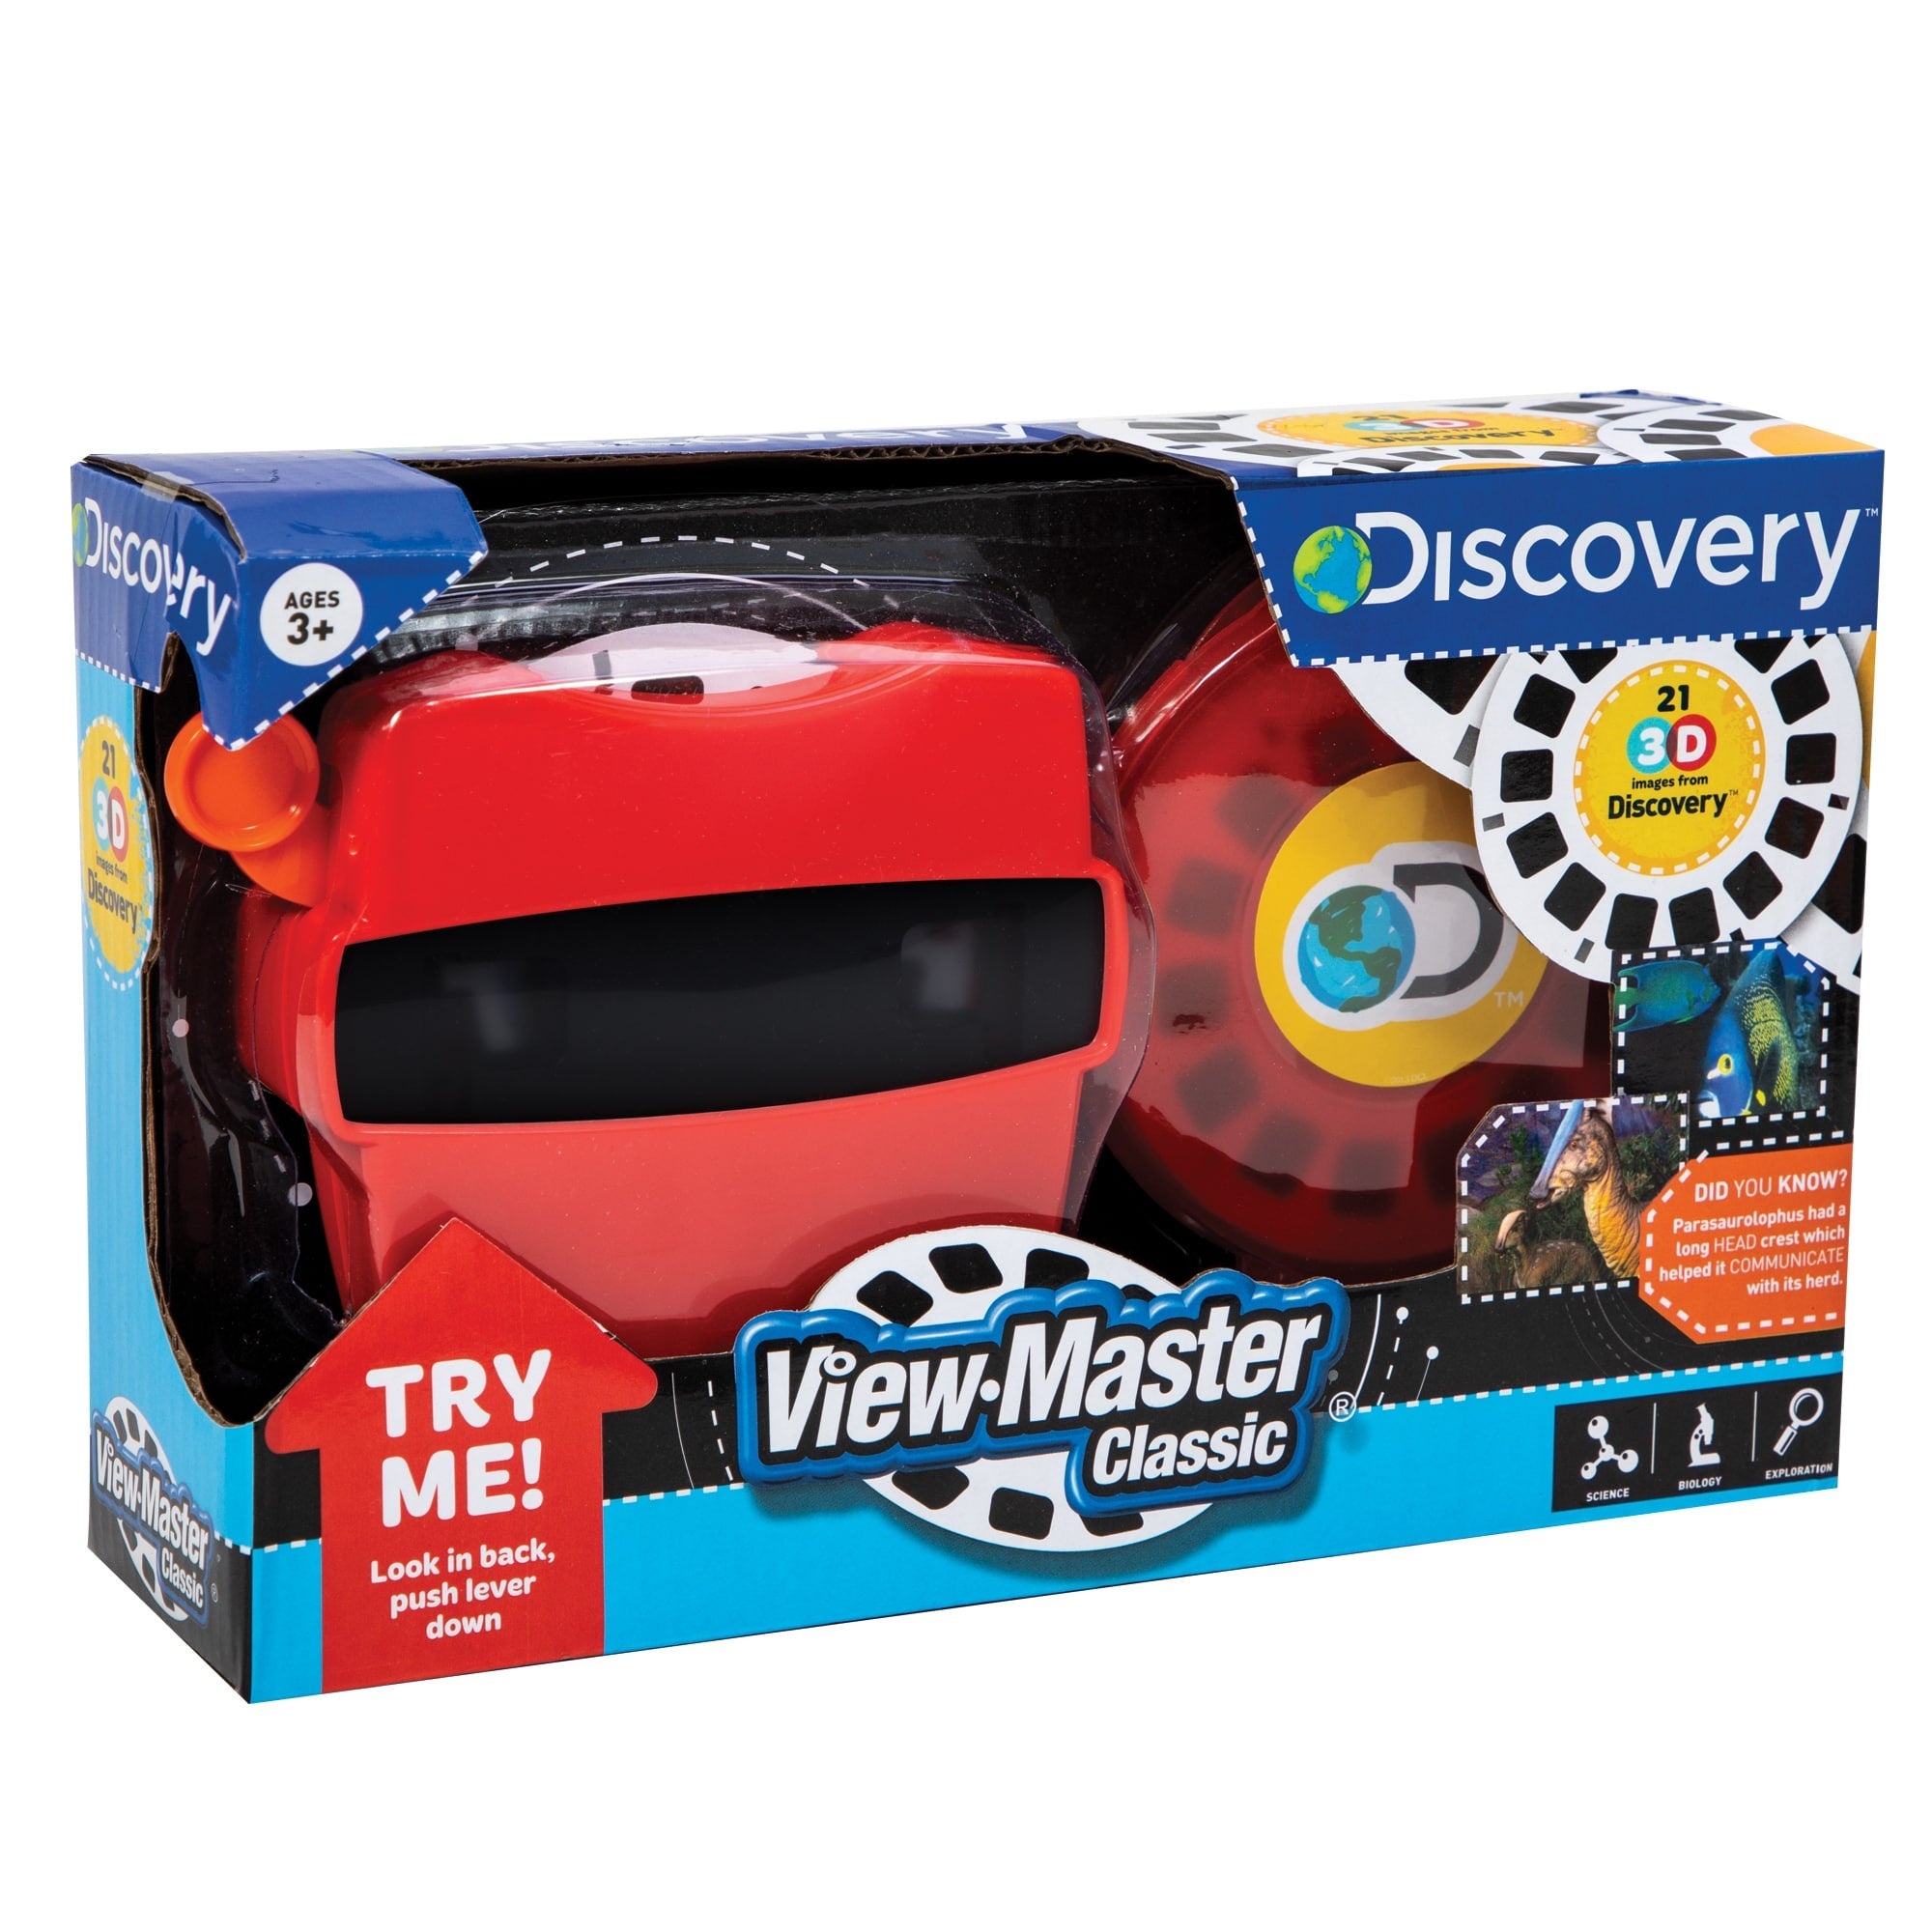 View-Master Boxed Set